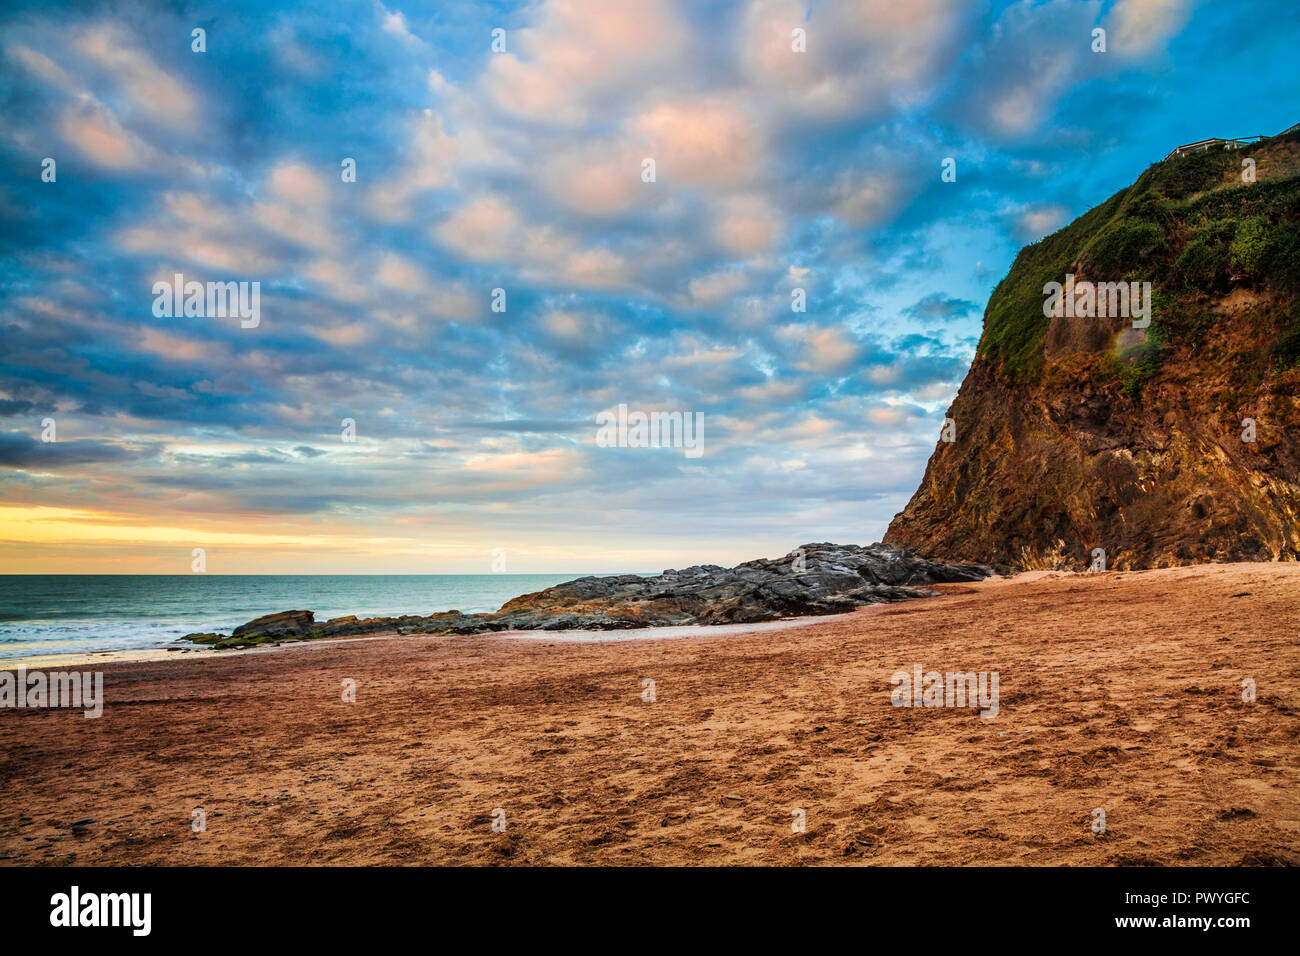 Sunset over the beach at Tresaith in Ceredigion, Wales. Stock Photo